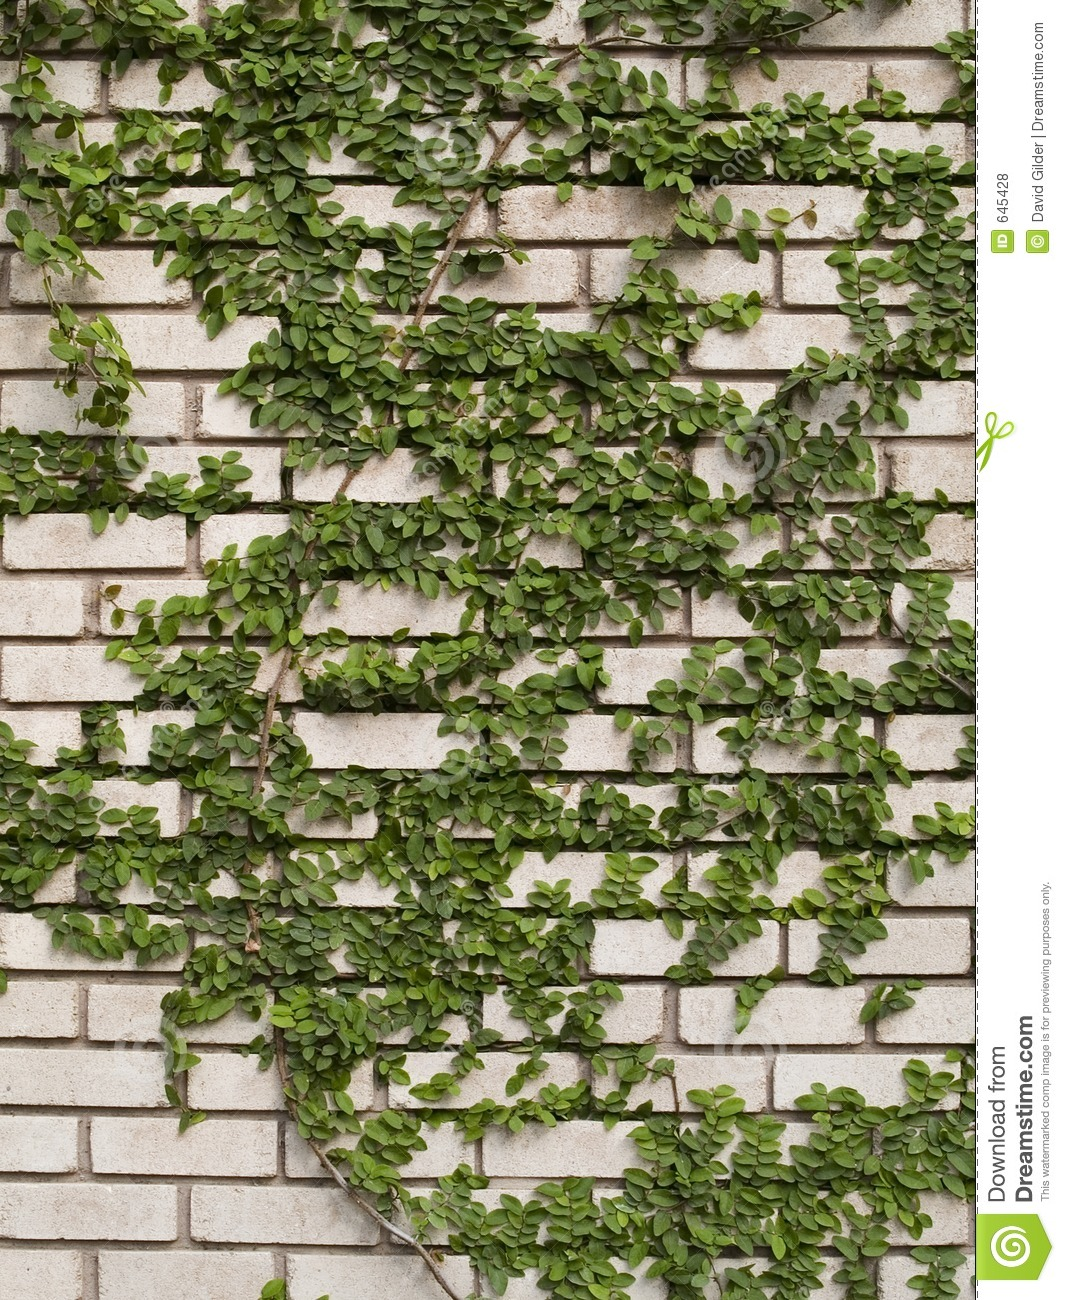 Green Ivy On Wall Royalty Free Stock Photos.